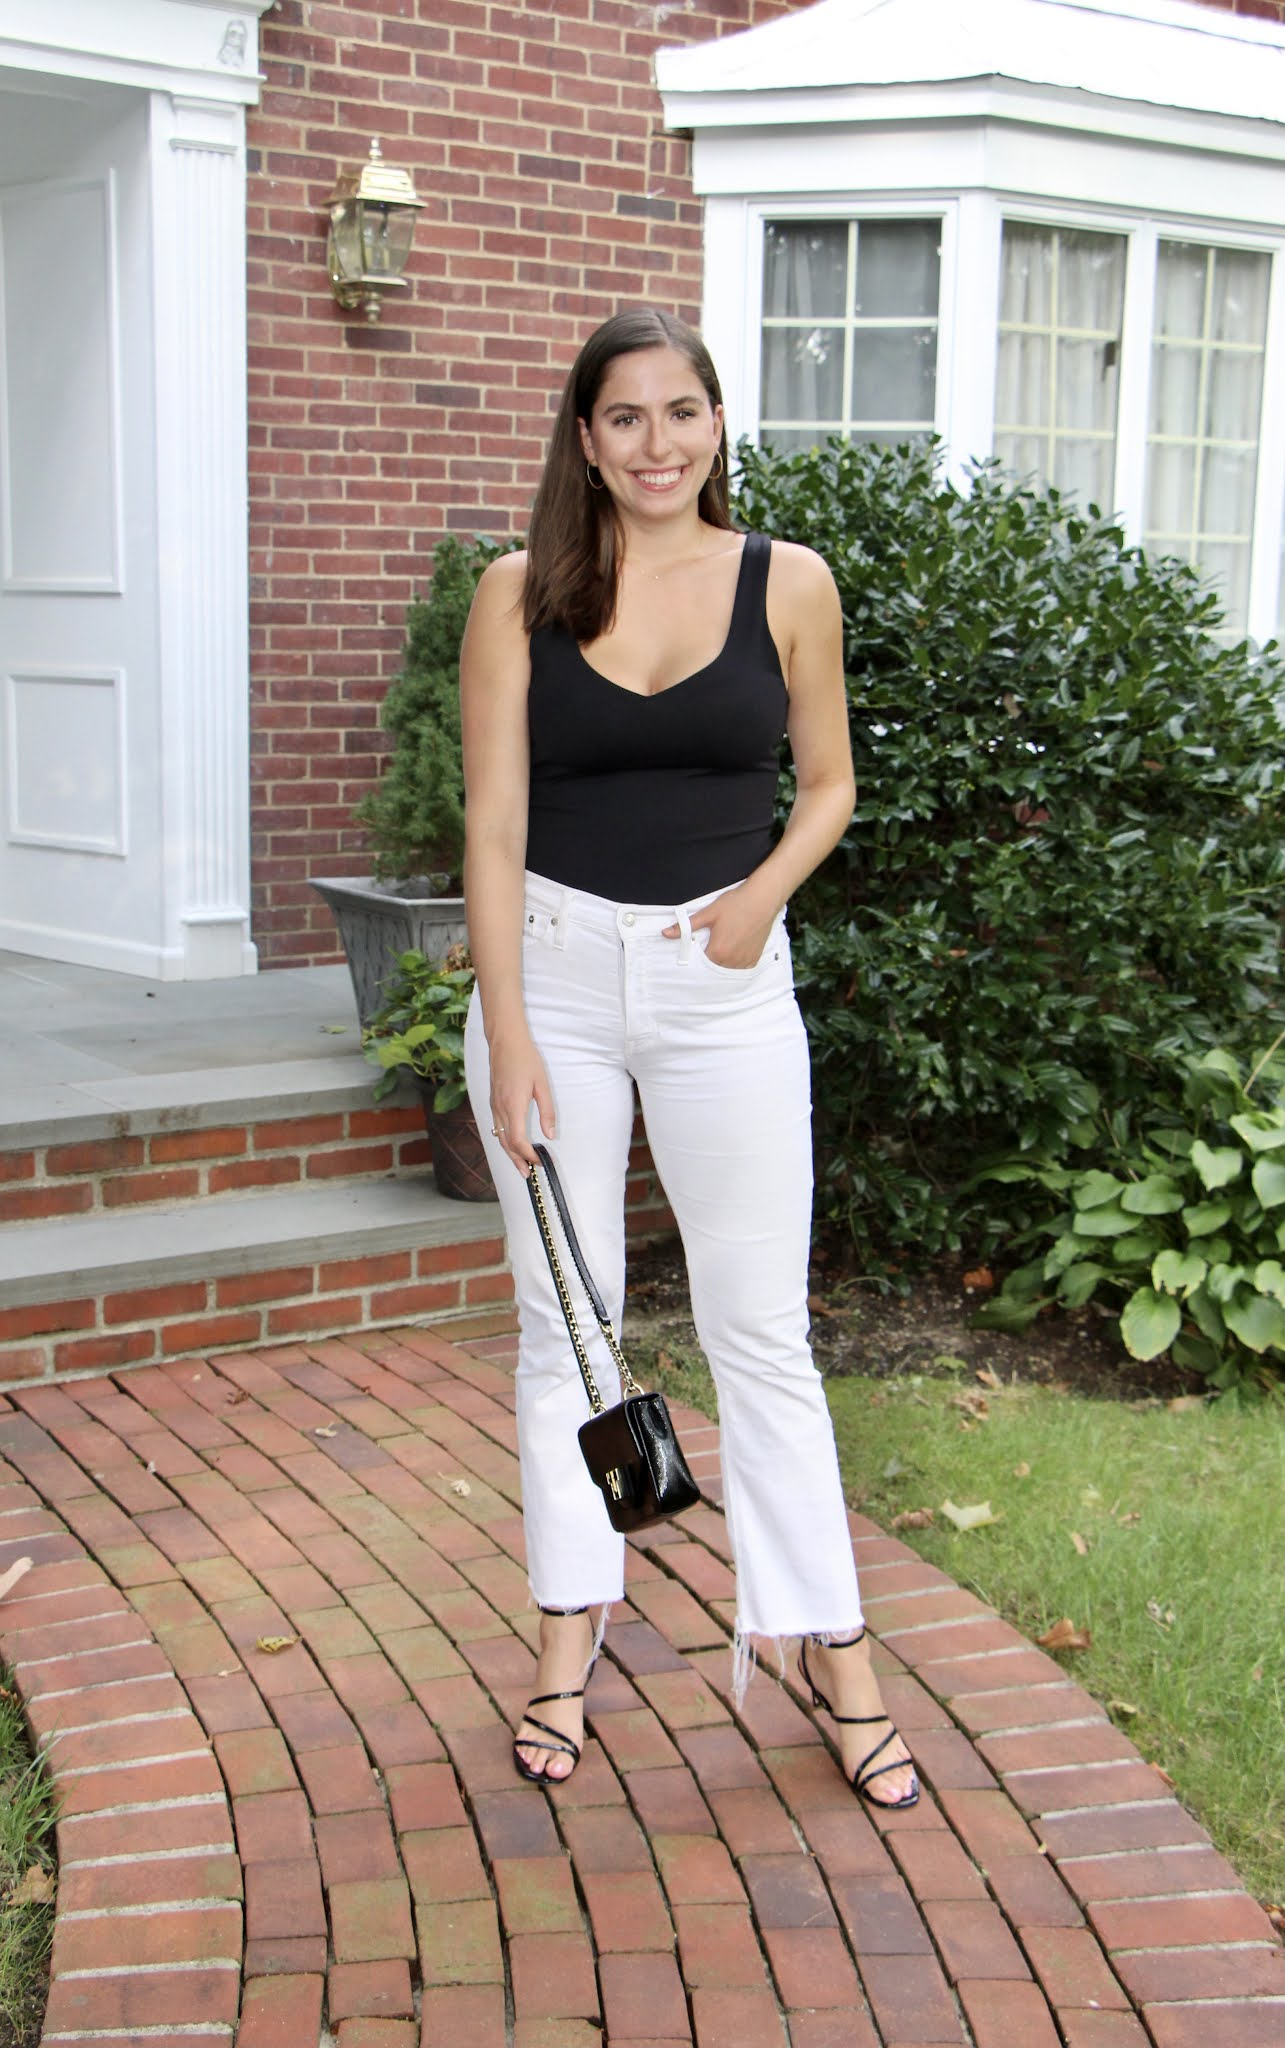 strappy heels, inez, white flare jeans, black bodysuit, abercrombie, date night, gno, bar outfit nyc